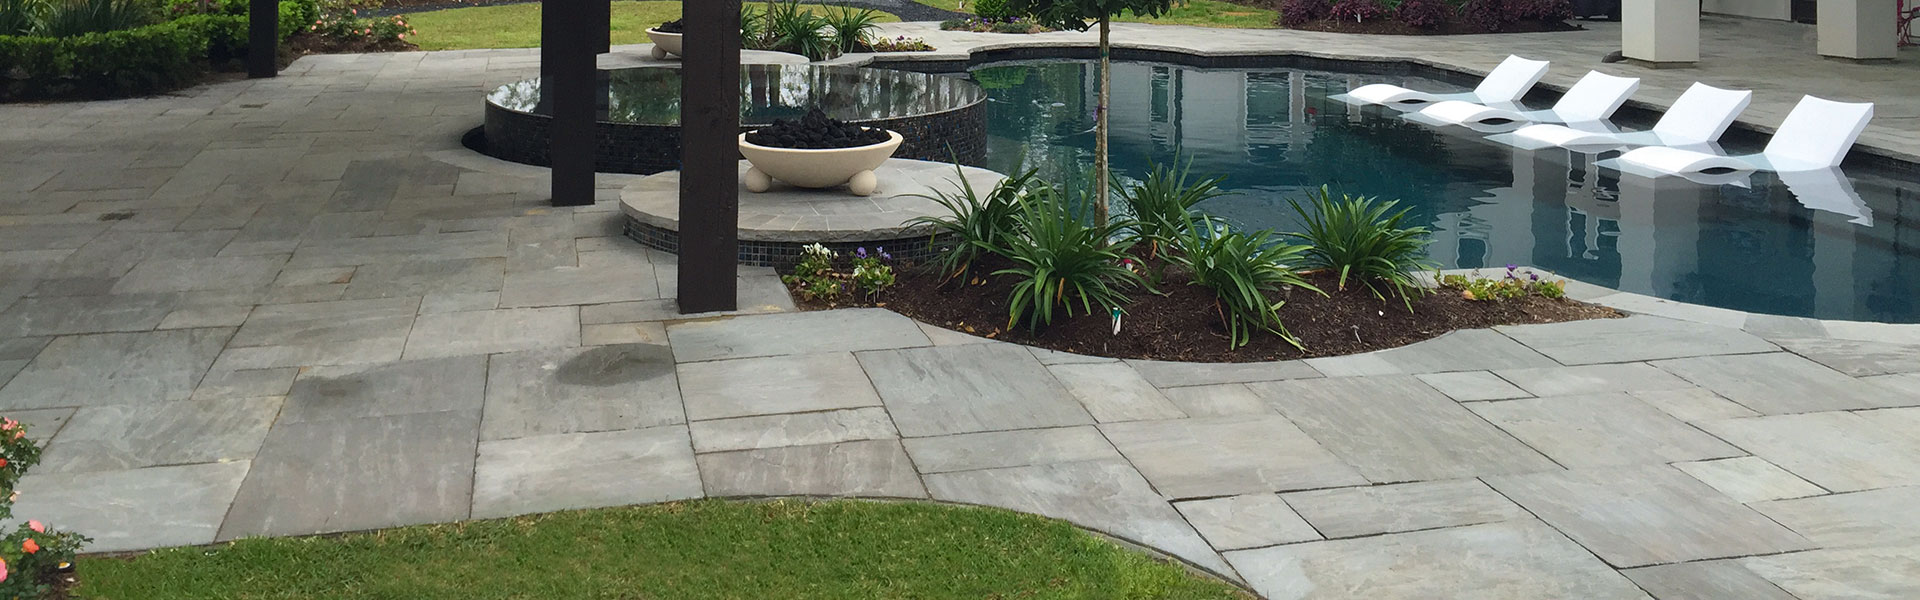 Natural Paving USA